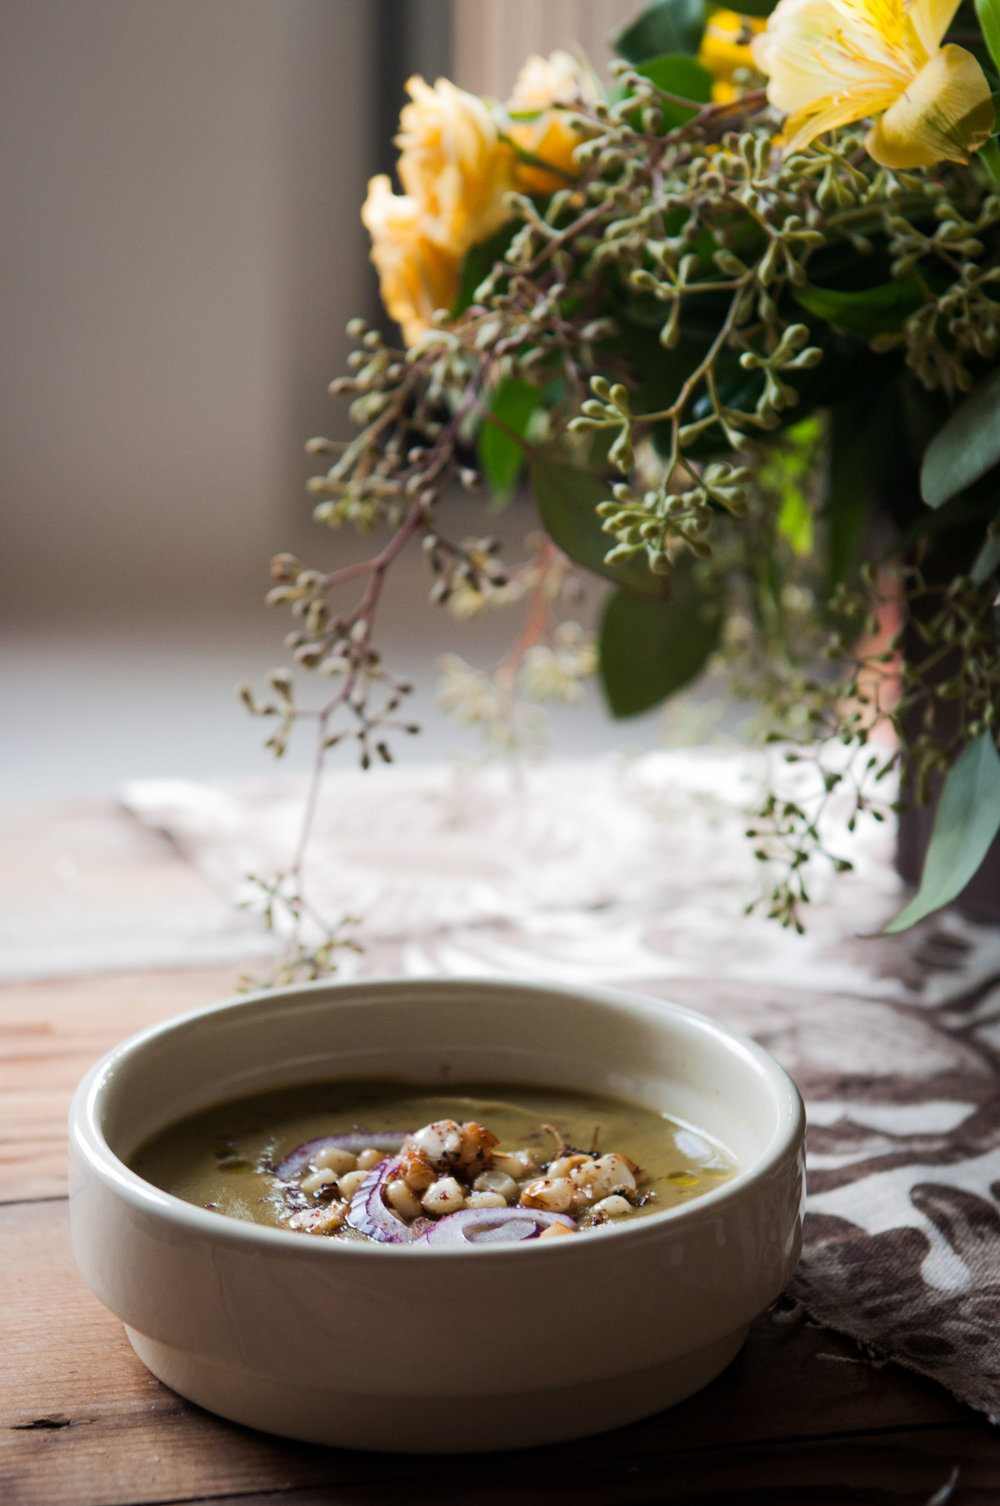 CELERIAC + PARSLEY ROOT SOUP